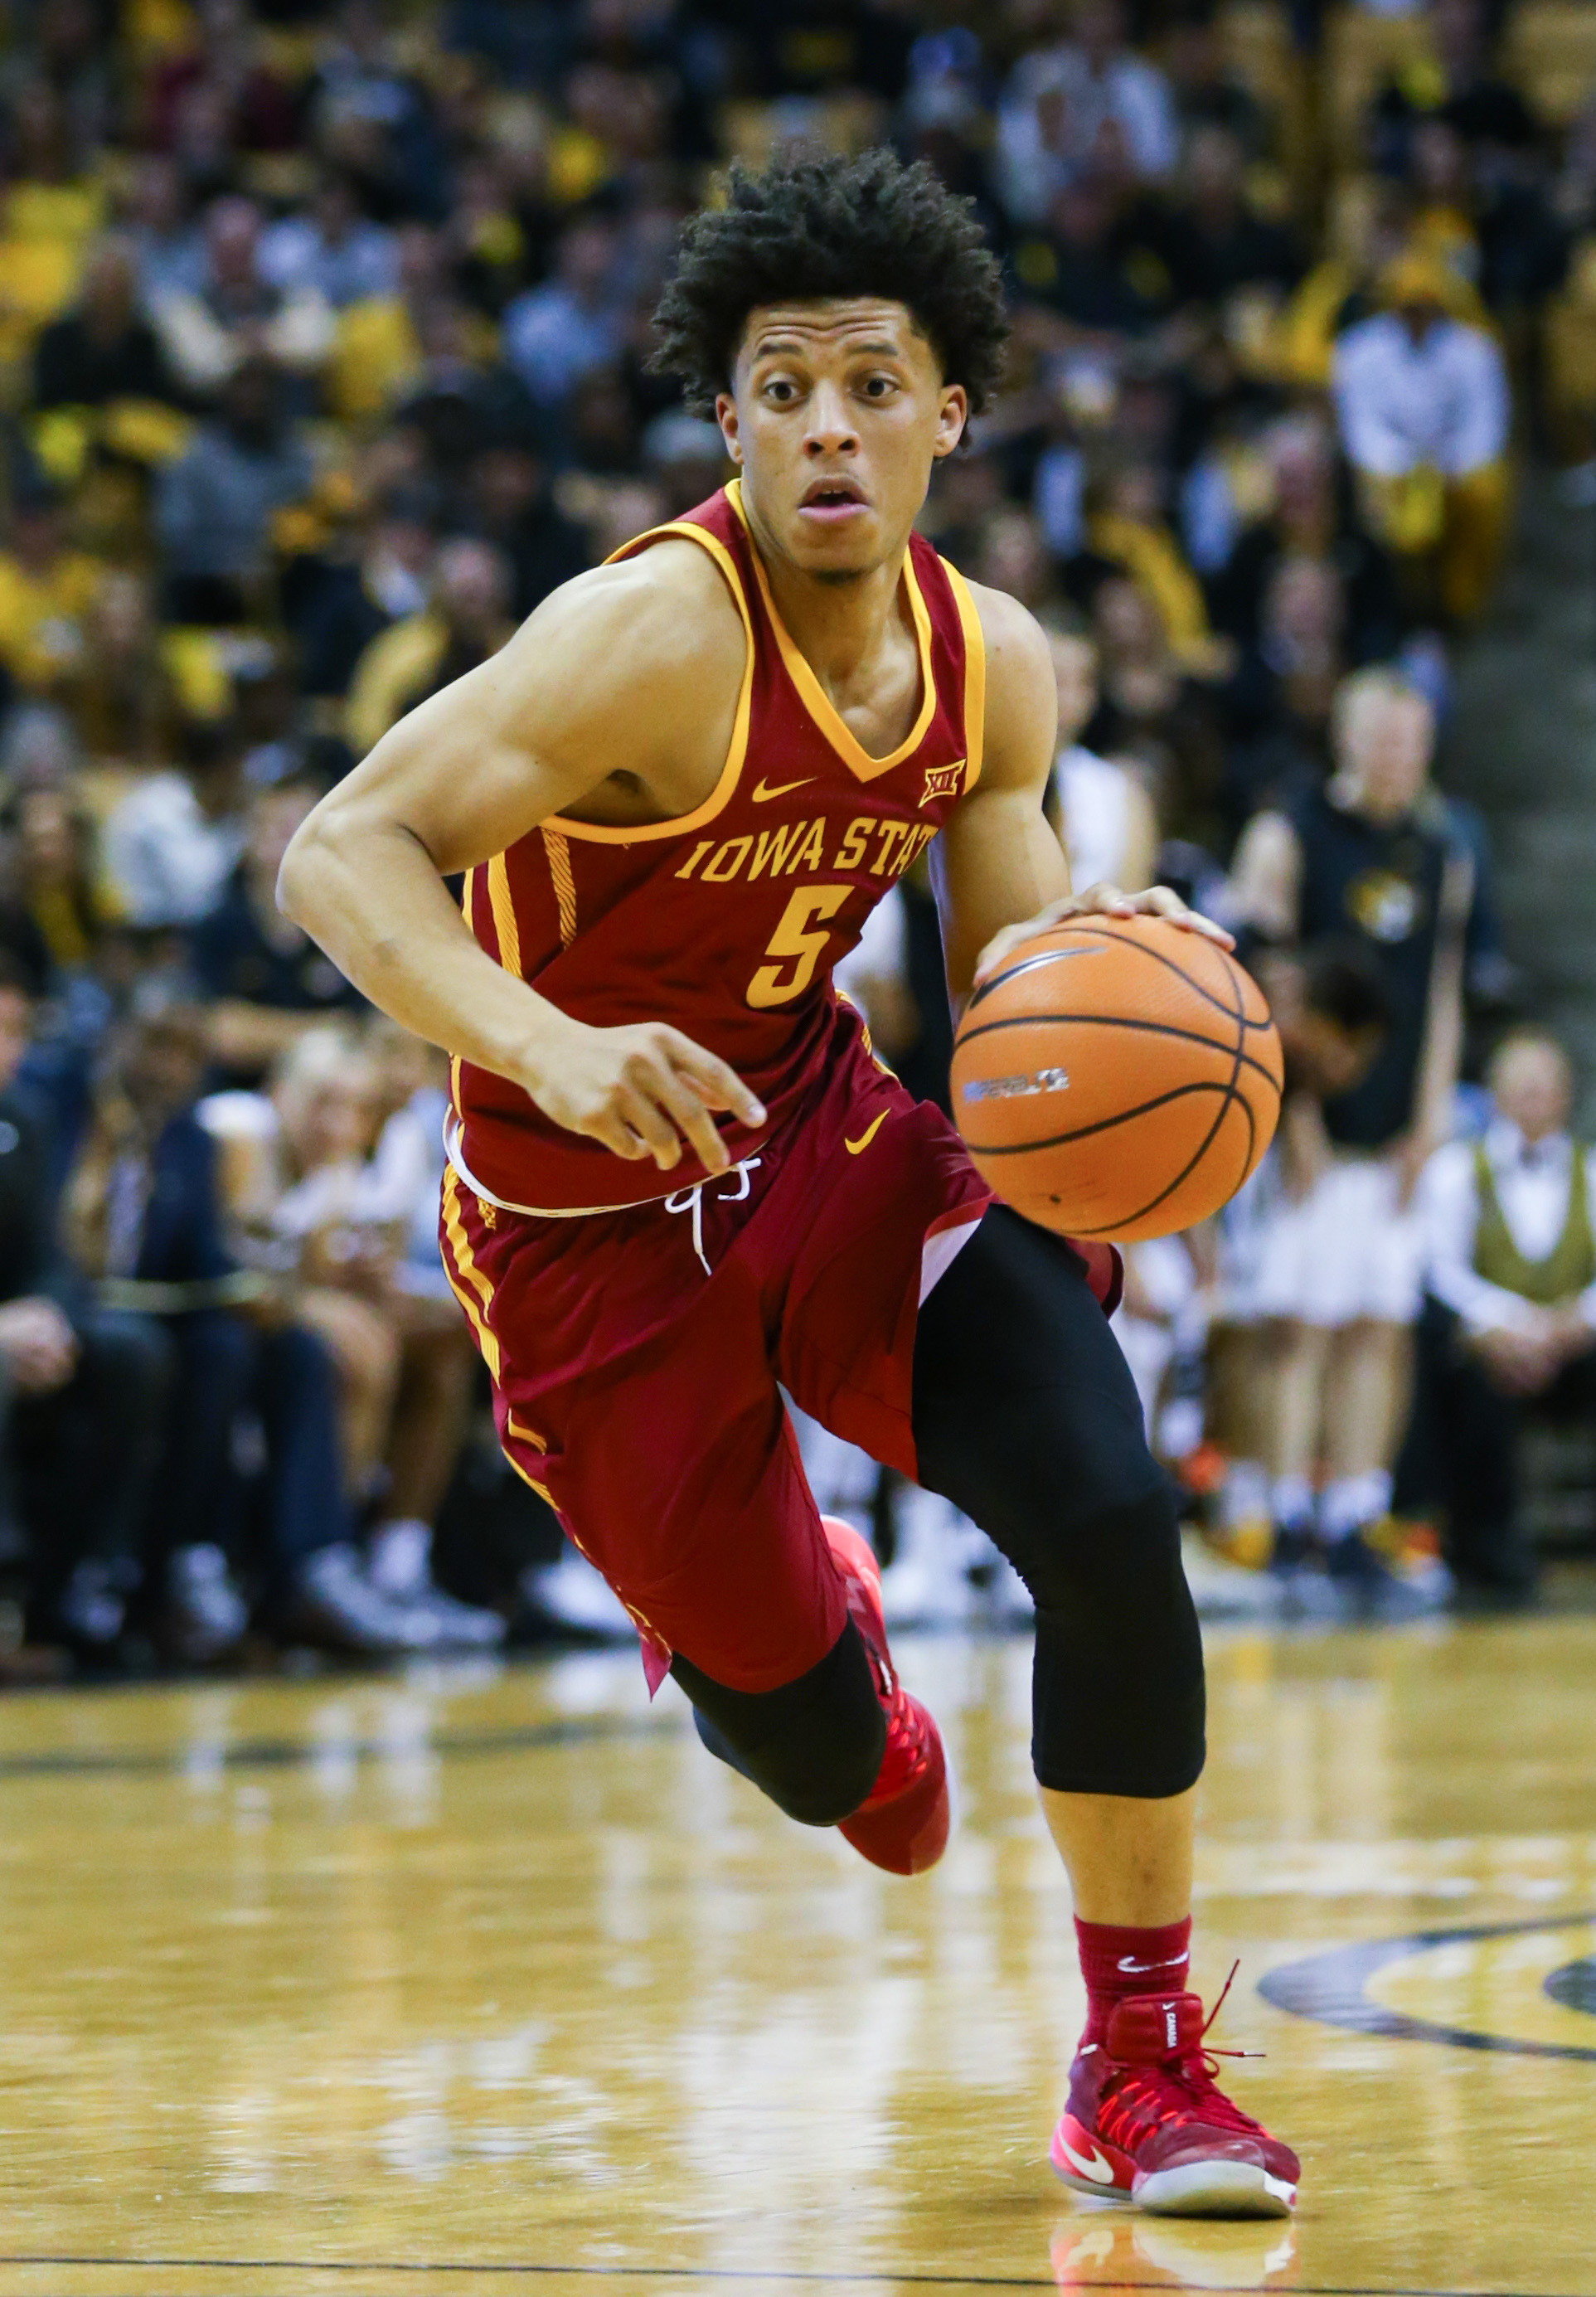 Wide right natty lite archives iowa state basketball page 1 basketball preview were talking northern illinois publicscrutiny Images